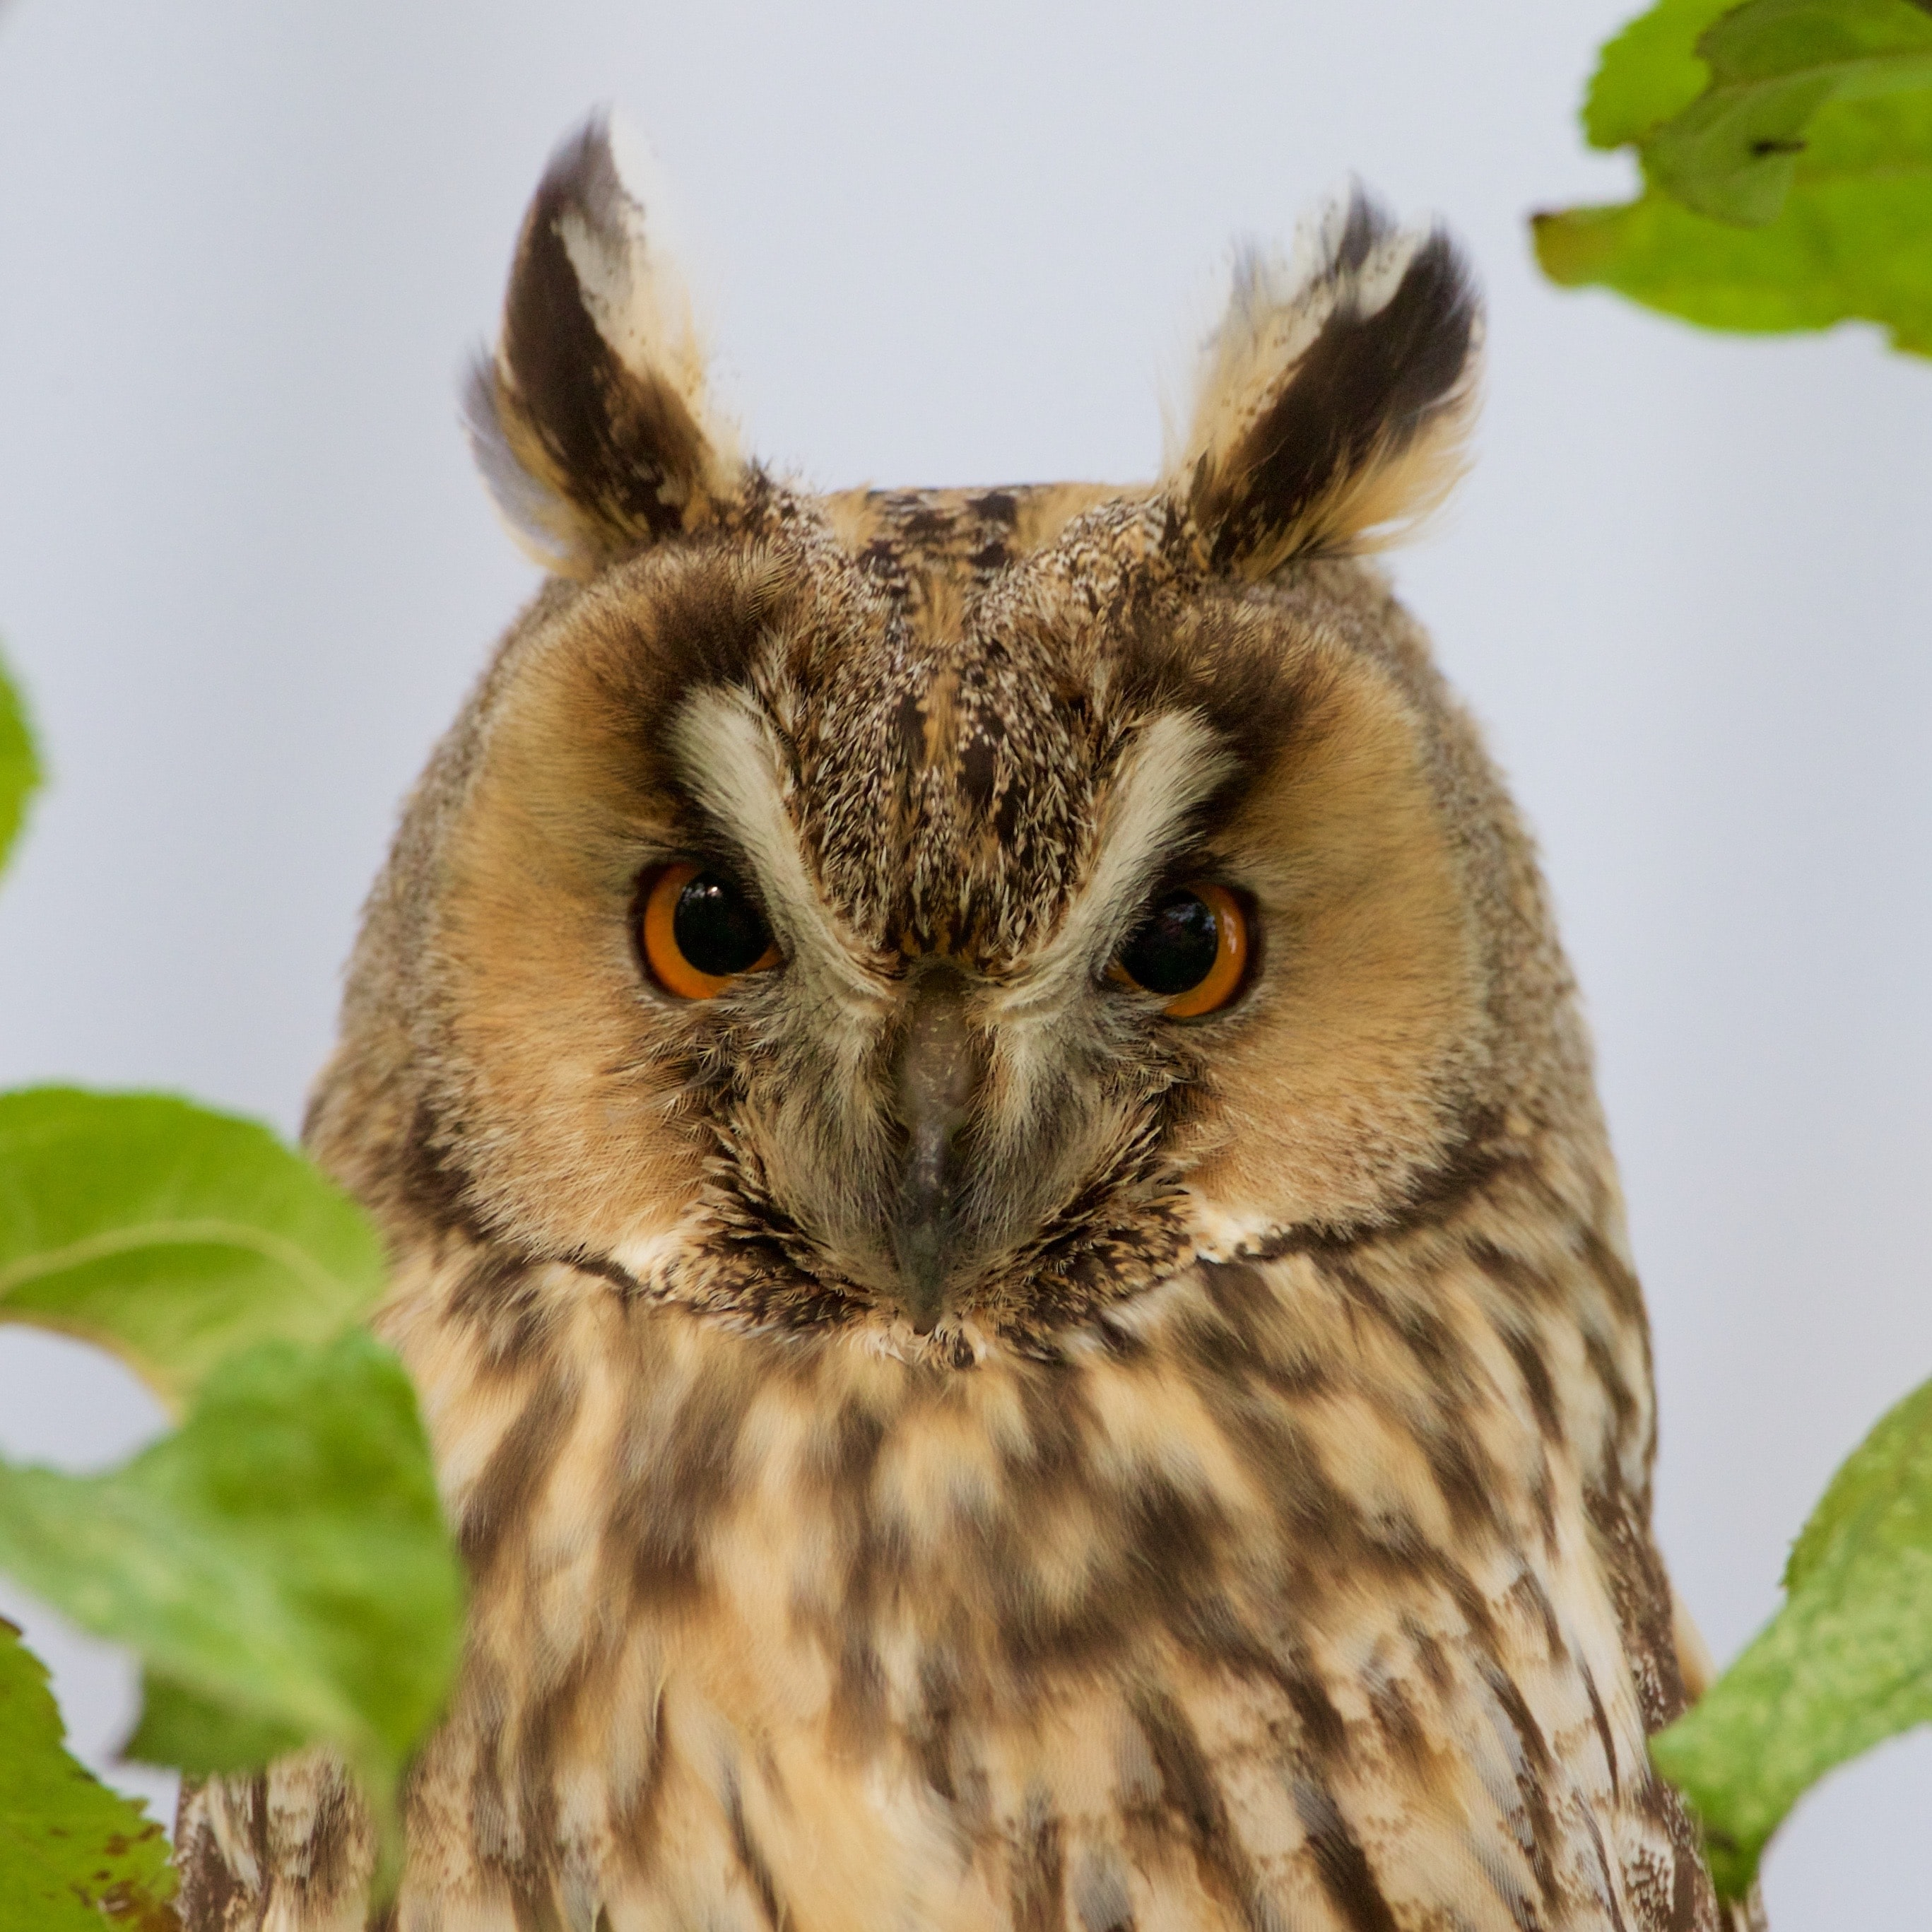 brown owl in tilt-shift photography